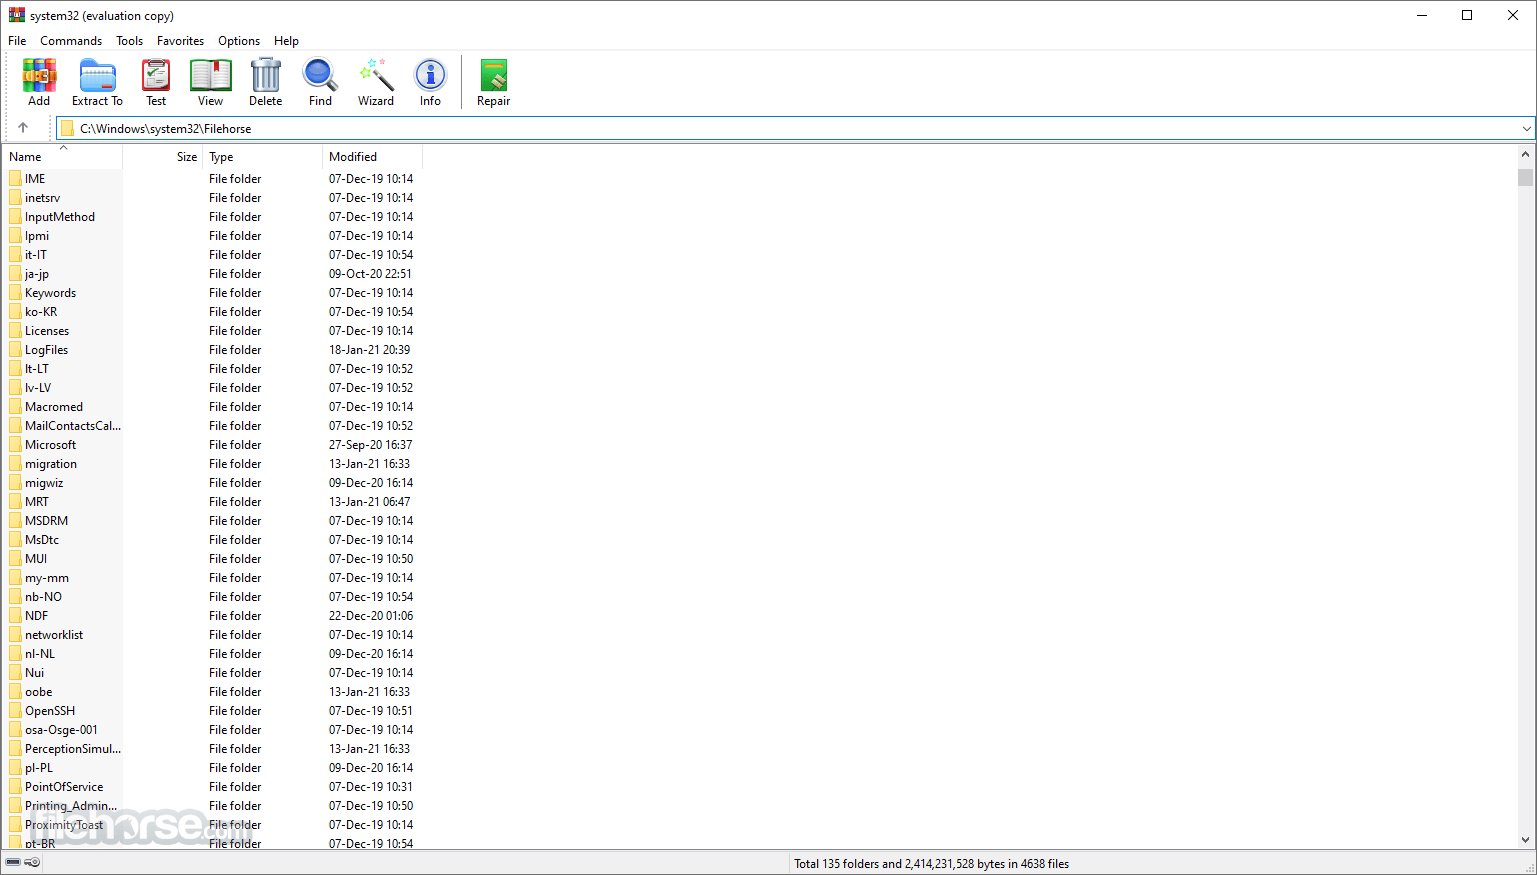 WinRAR 5.50 Beta 4 (32-bit) Screenshot 1